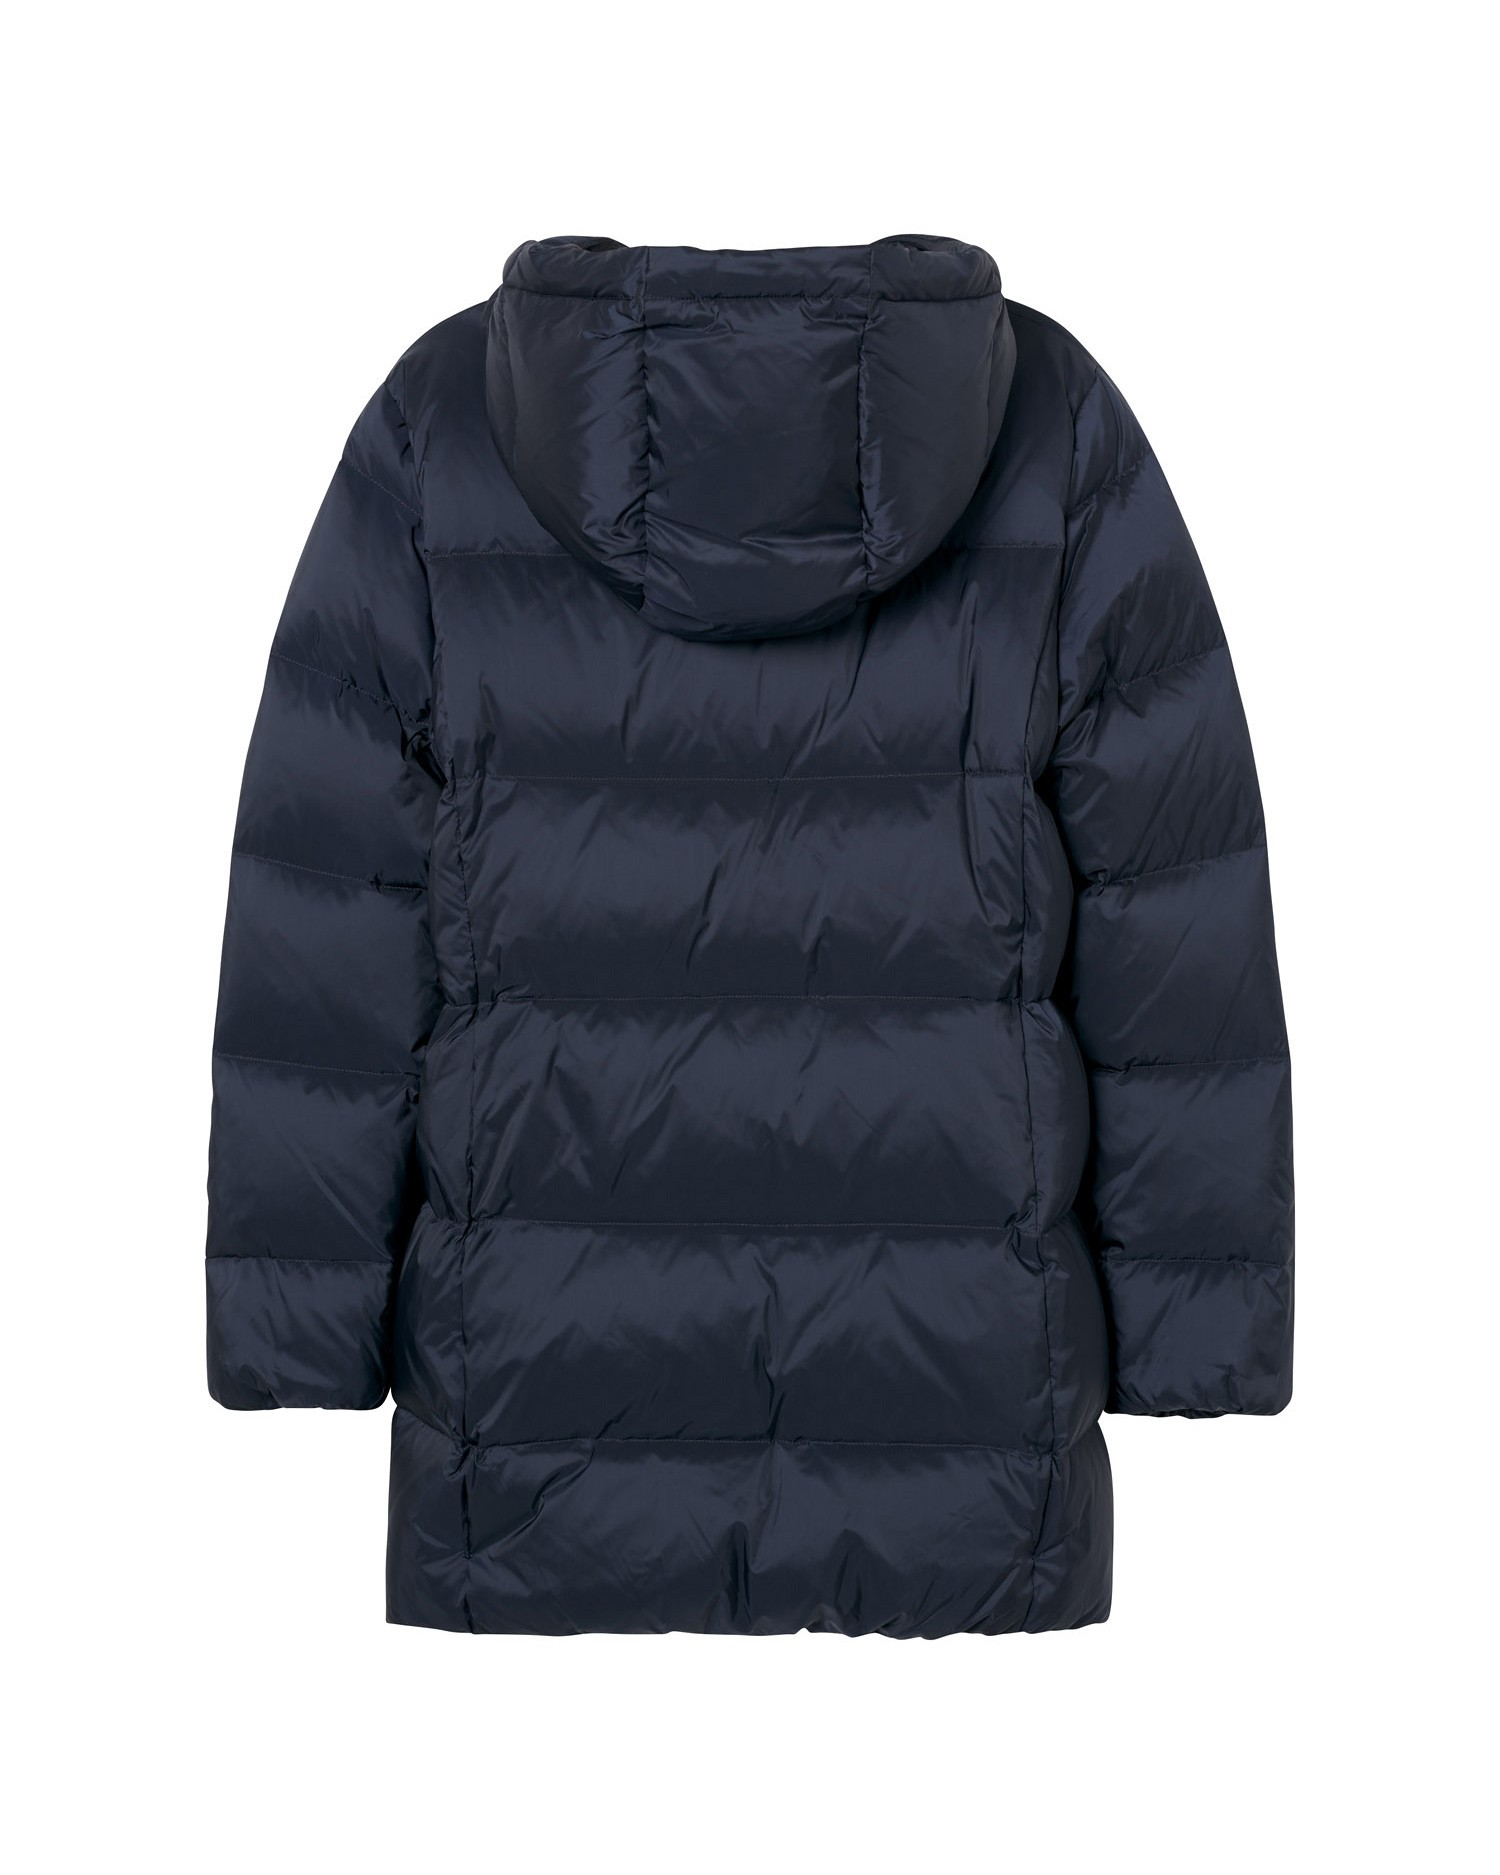 GANT Women's Classic Long Down Jacket - 4700001